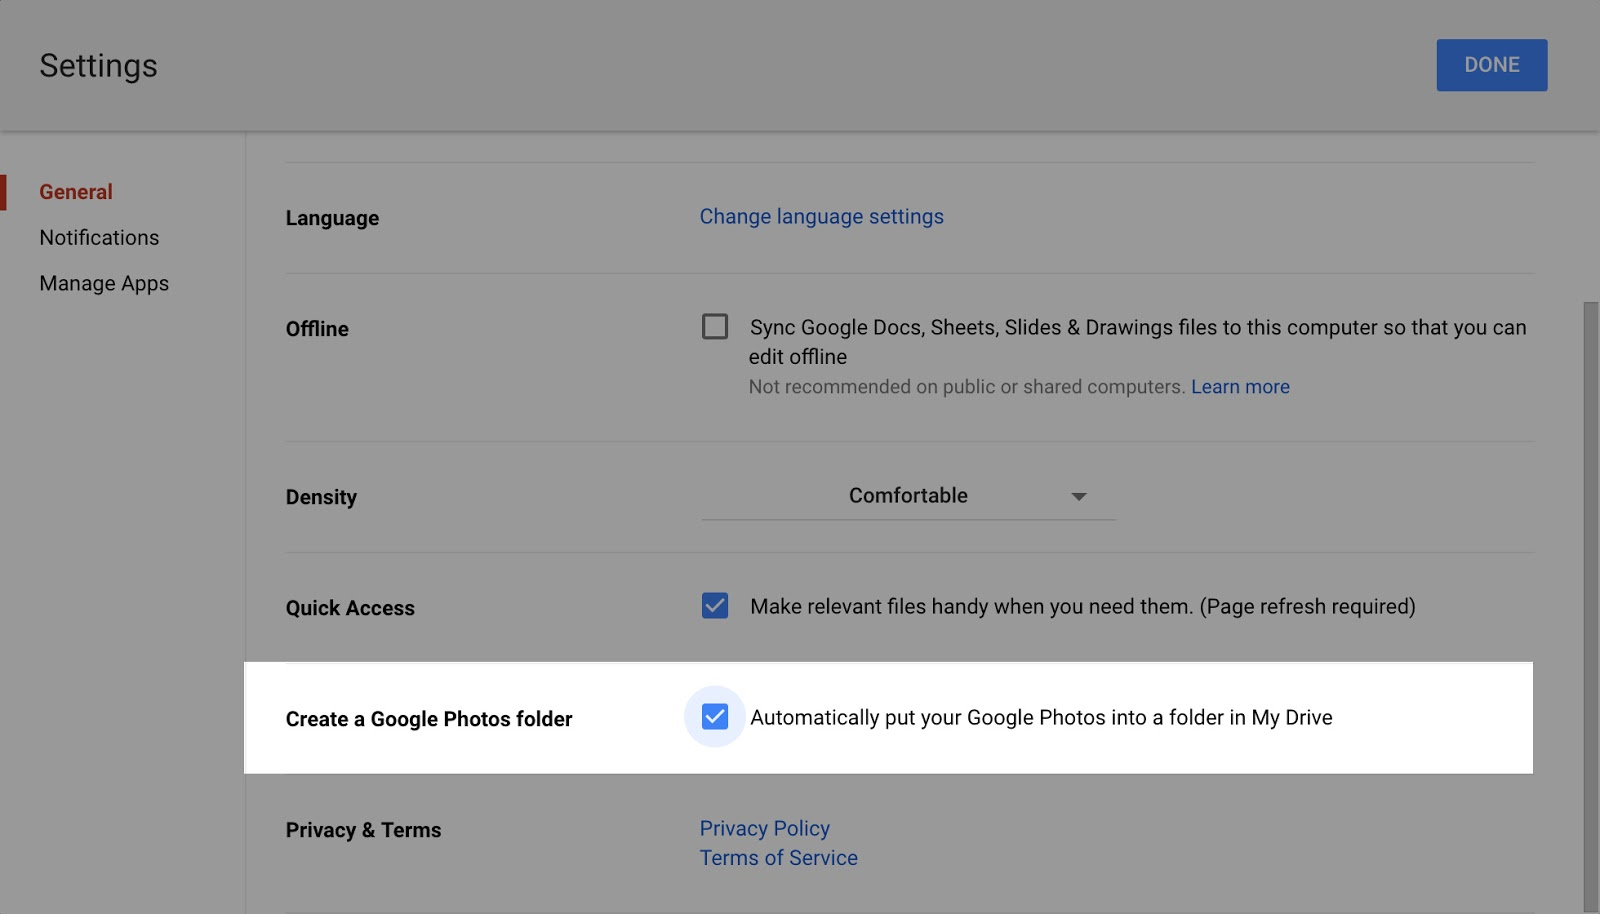 G Suite Updates Blog: Changing how you view photos and videos in